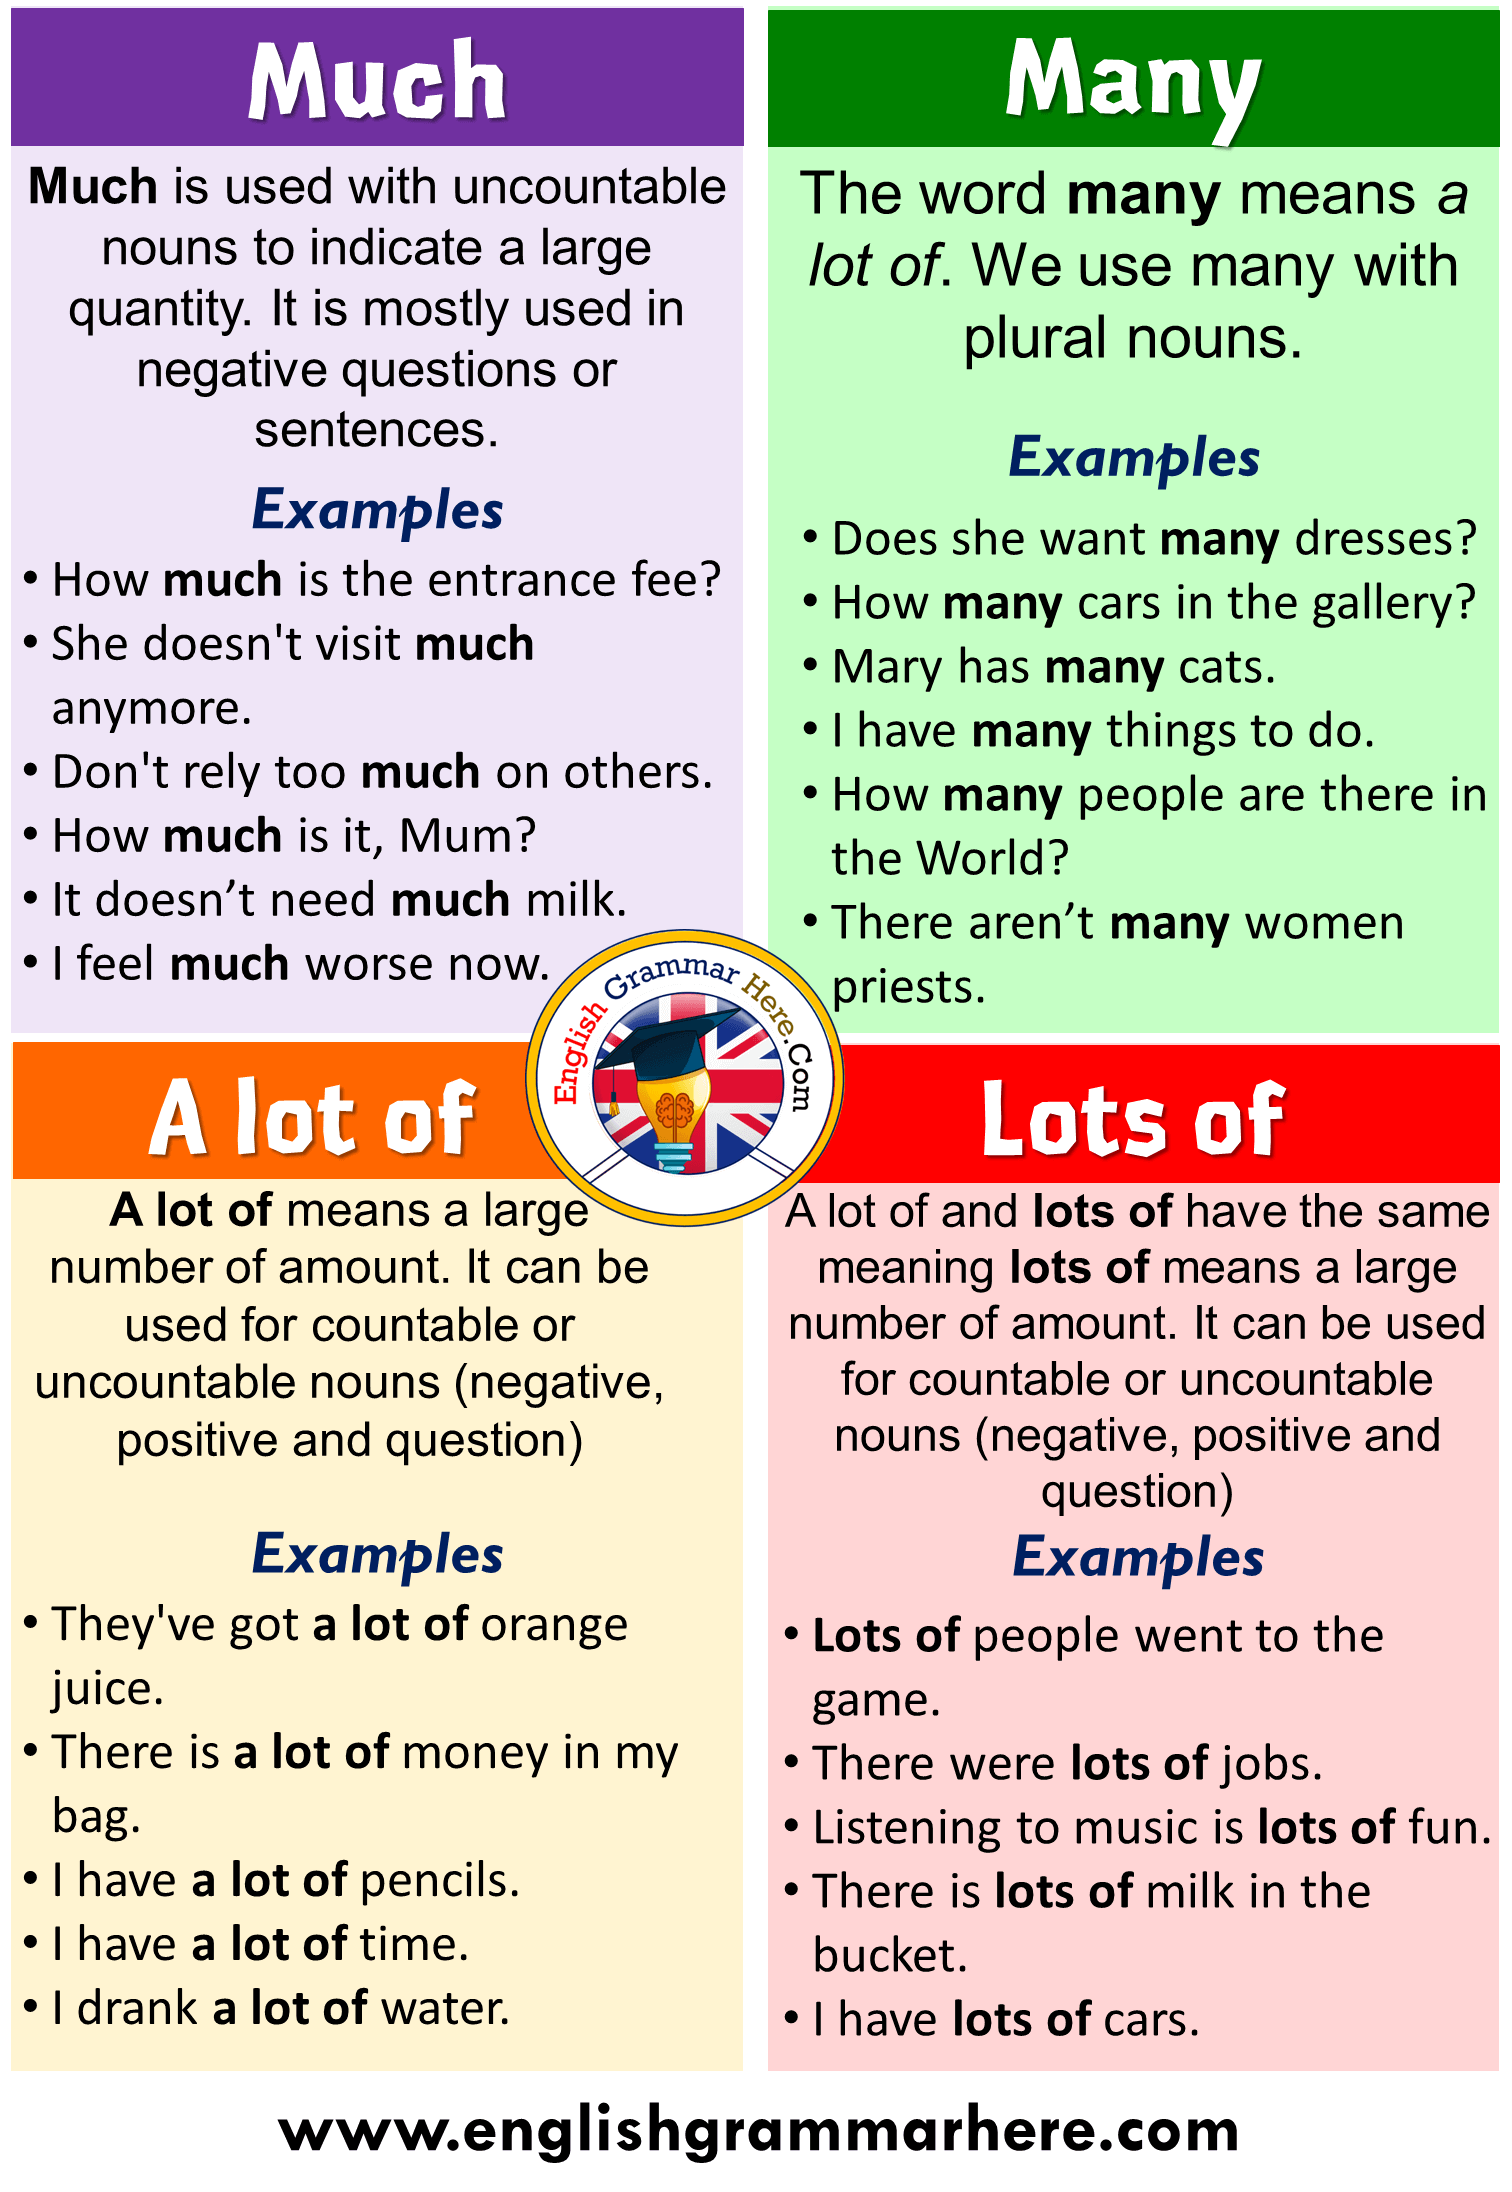 Using Many, Much, A lot of, Lots of and Example Sentences